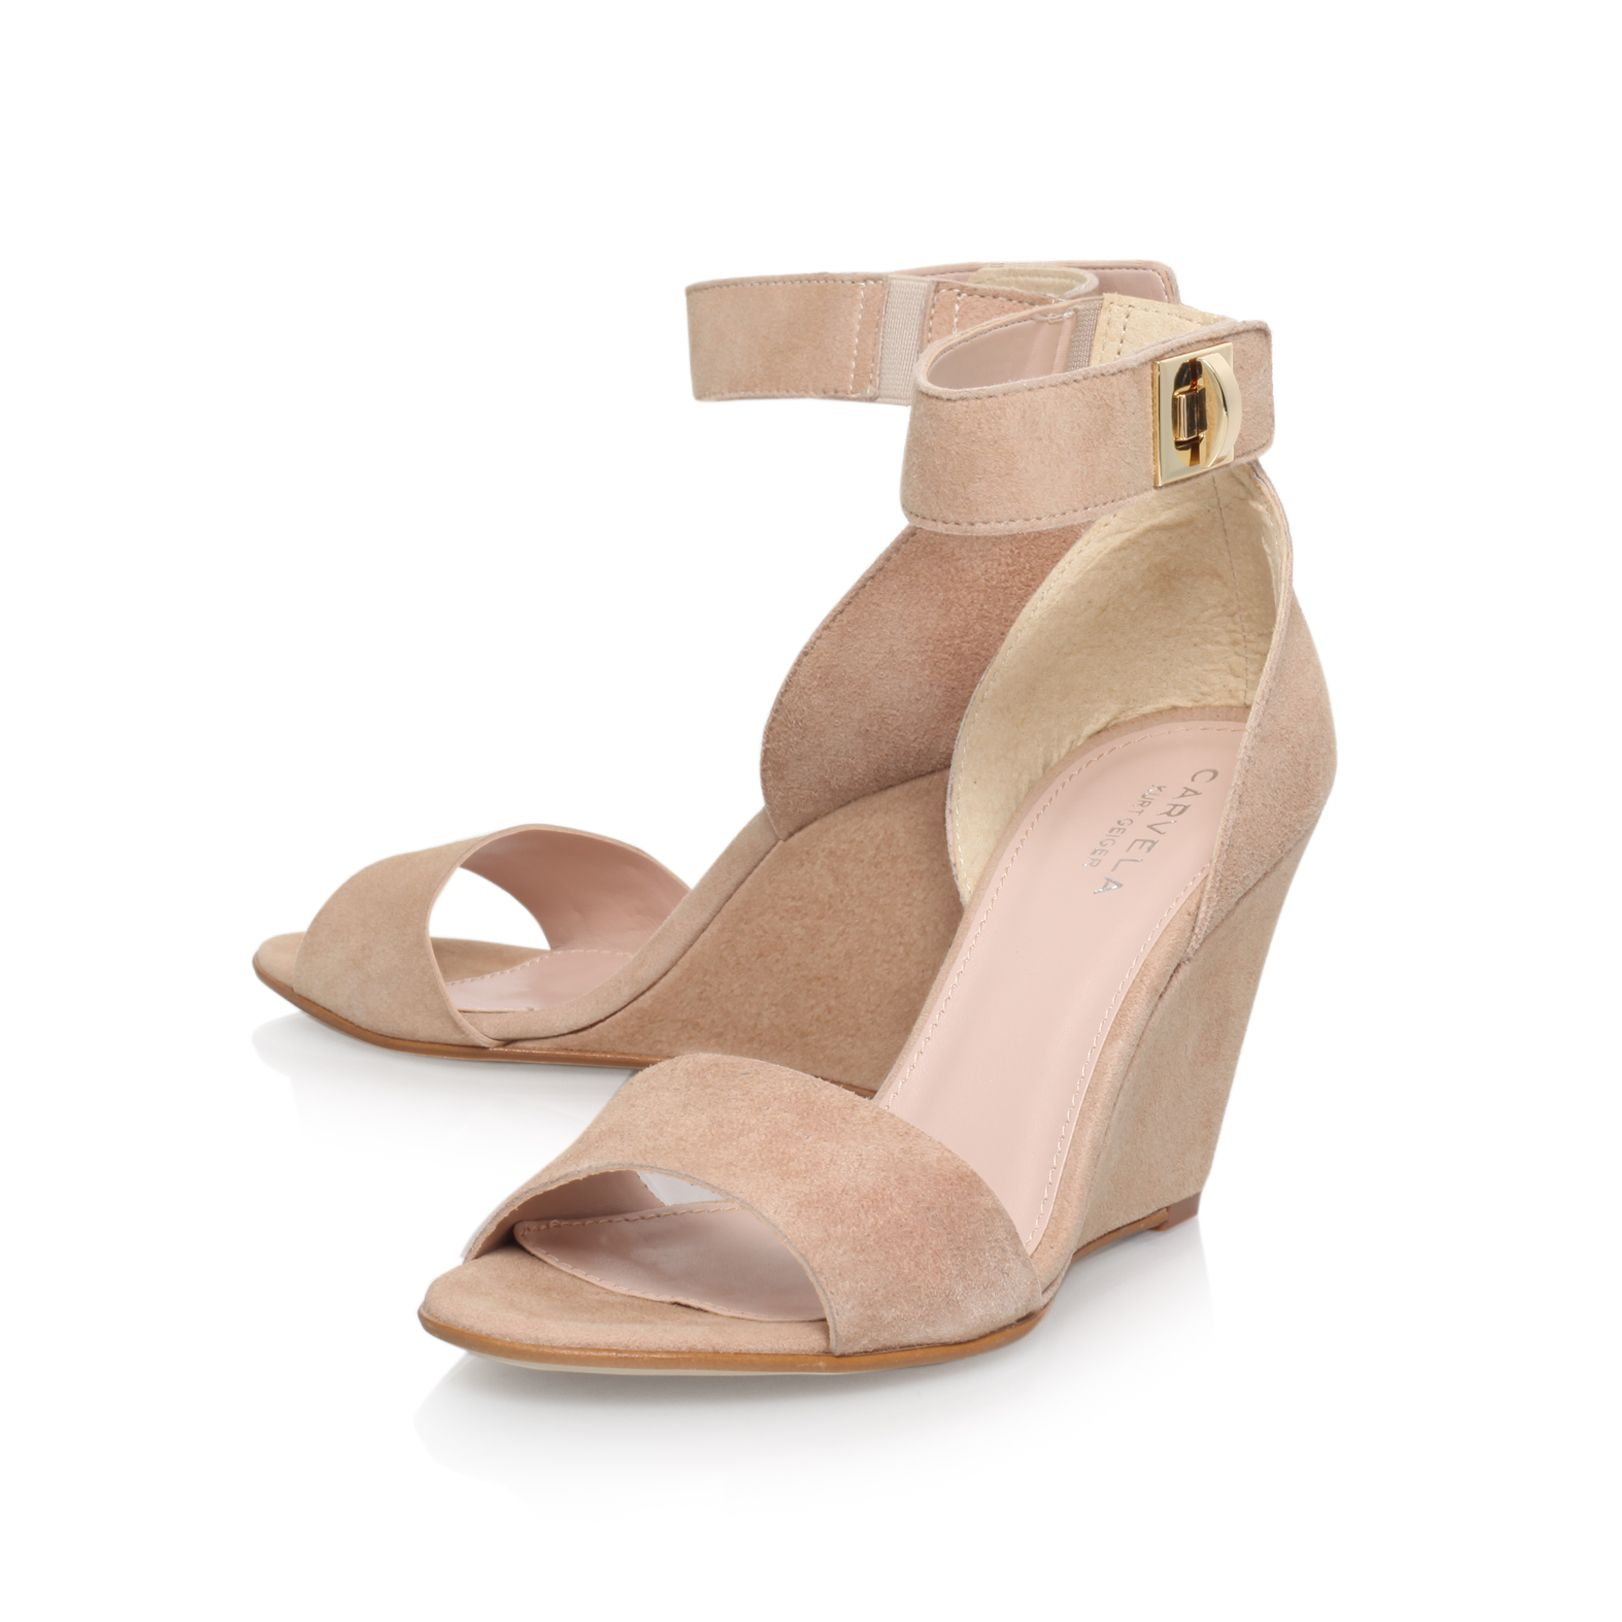 Kulprit high heel wedge sandals